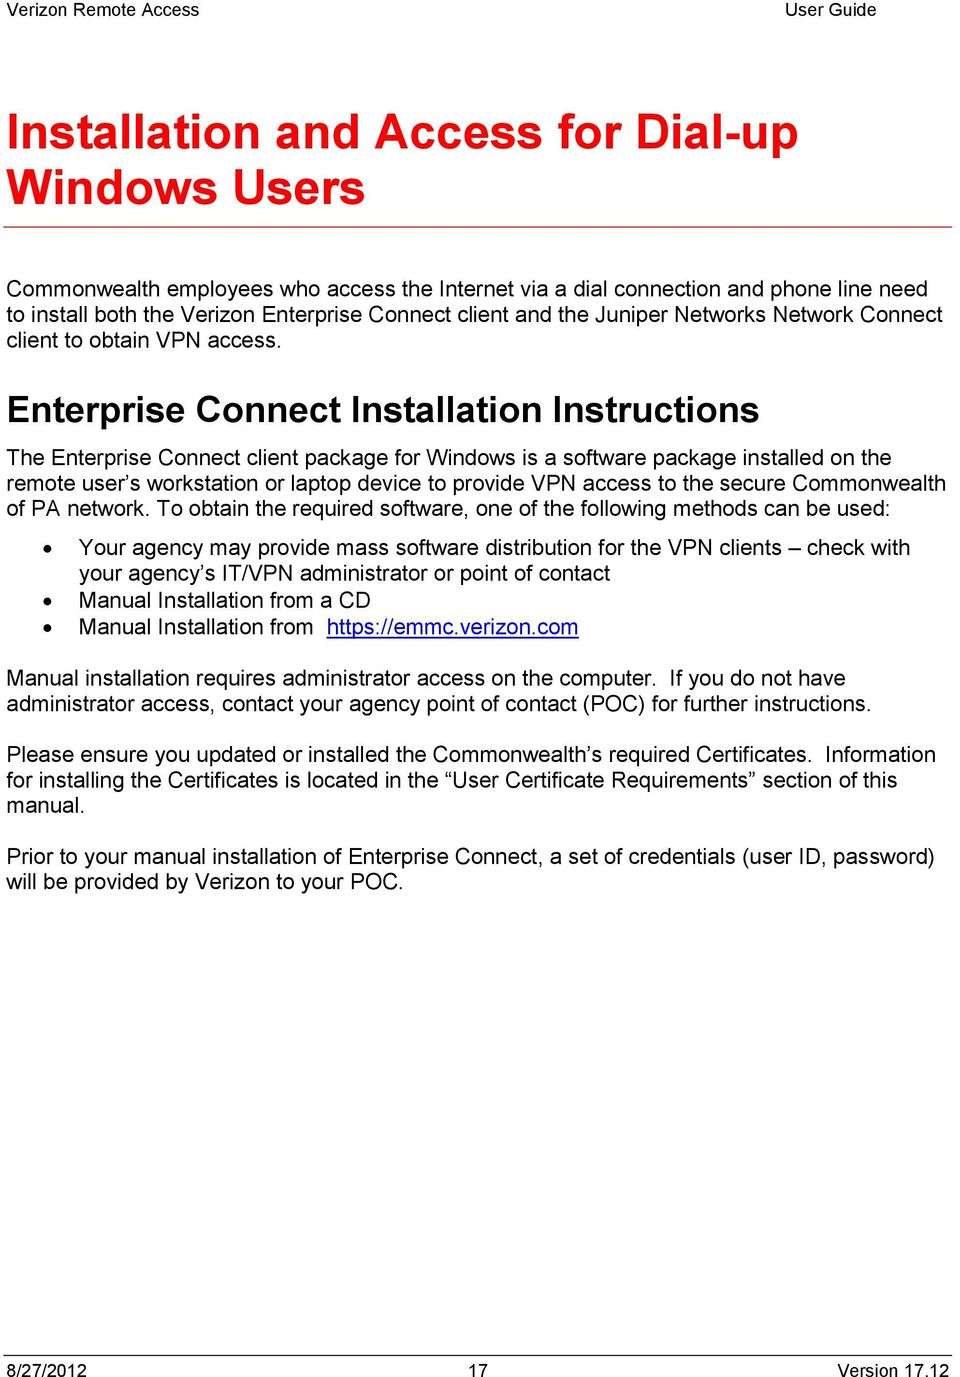 Enterprise Connect Installation Instructions The Enterprise Connect client package for Windows is a software package installed on the remote user s workstation or laptop device to provide VPN access